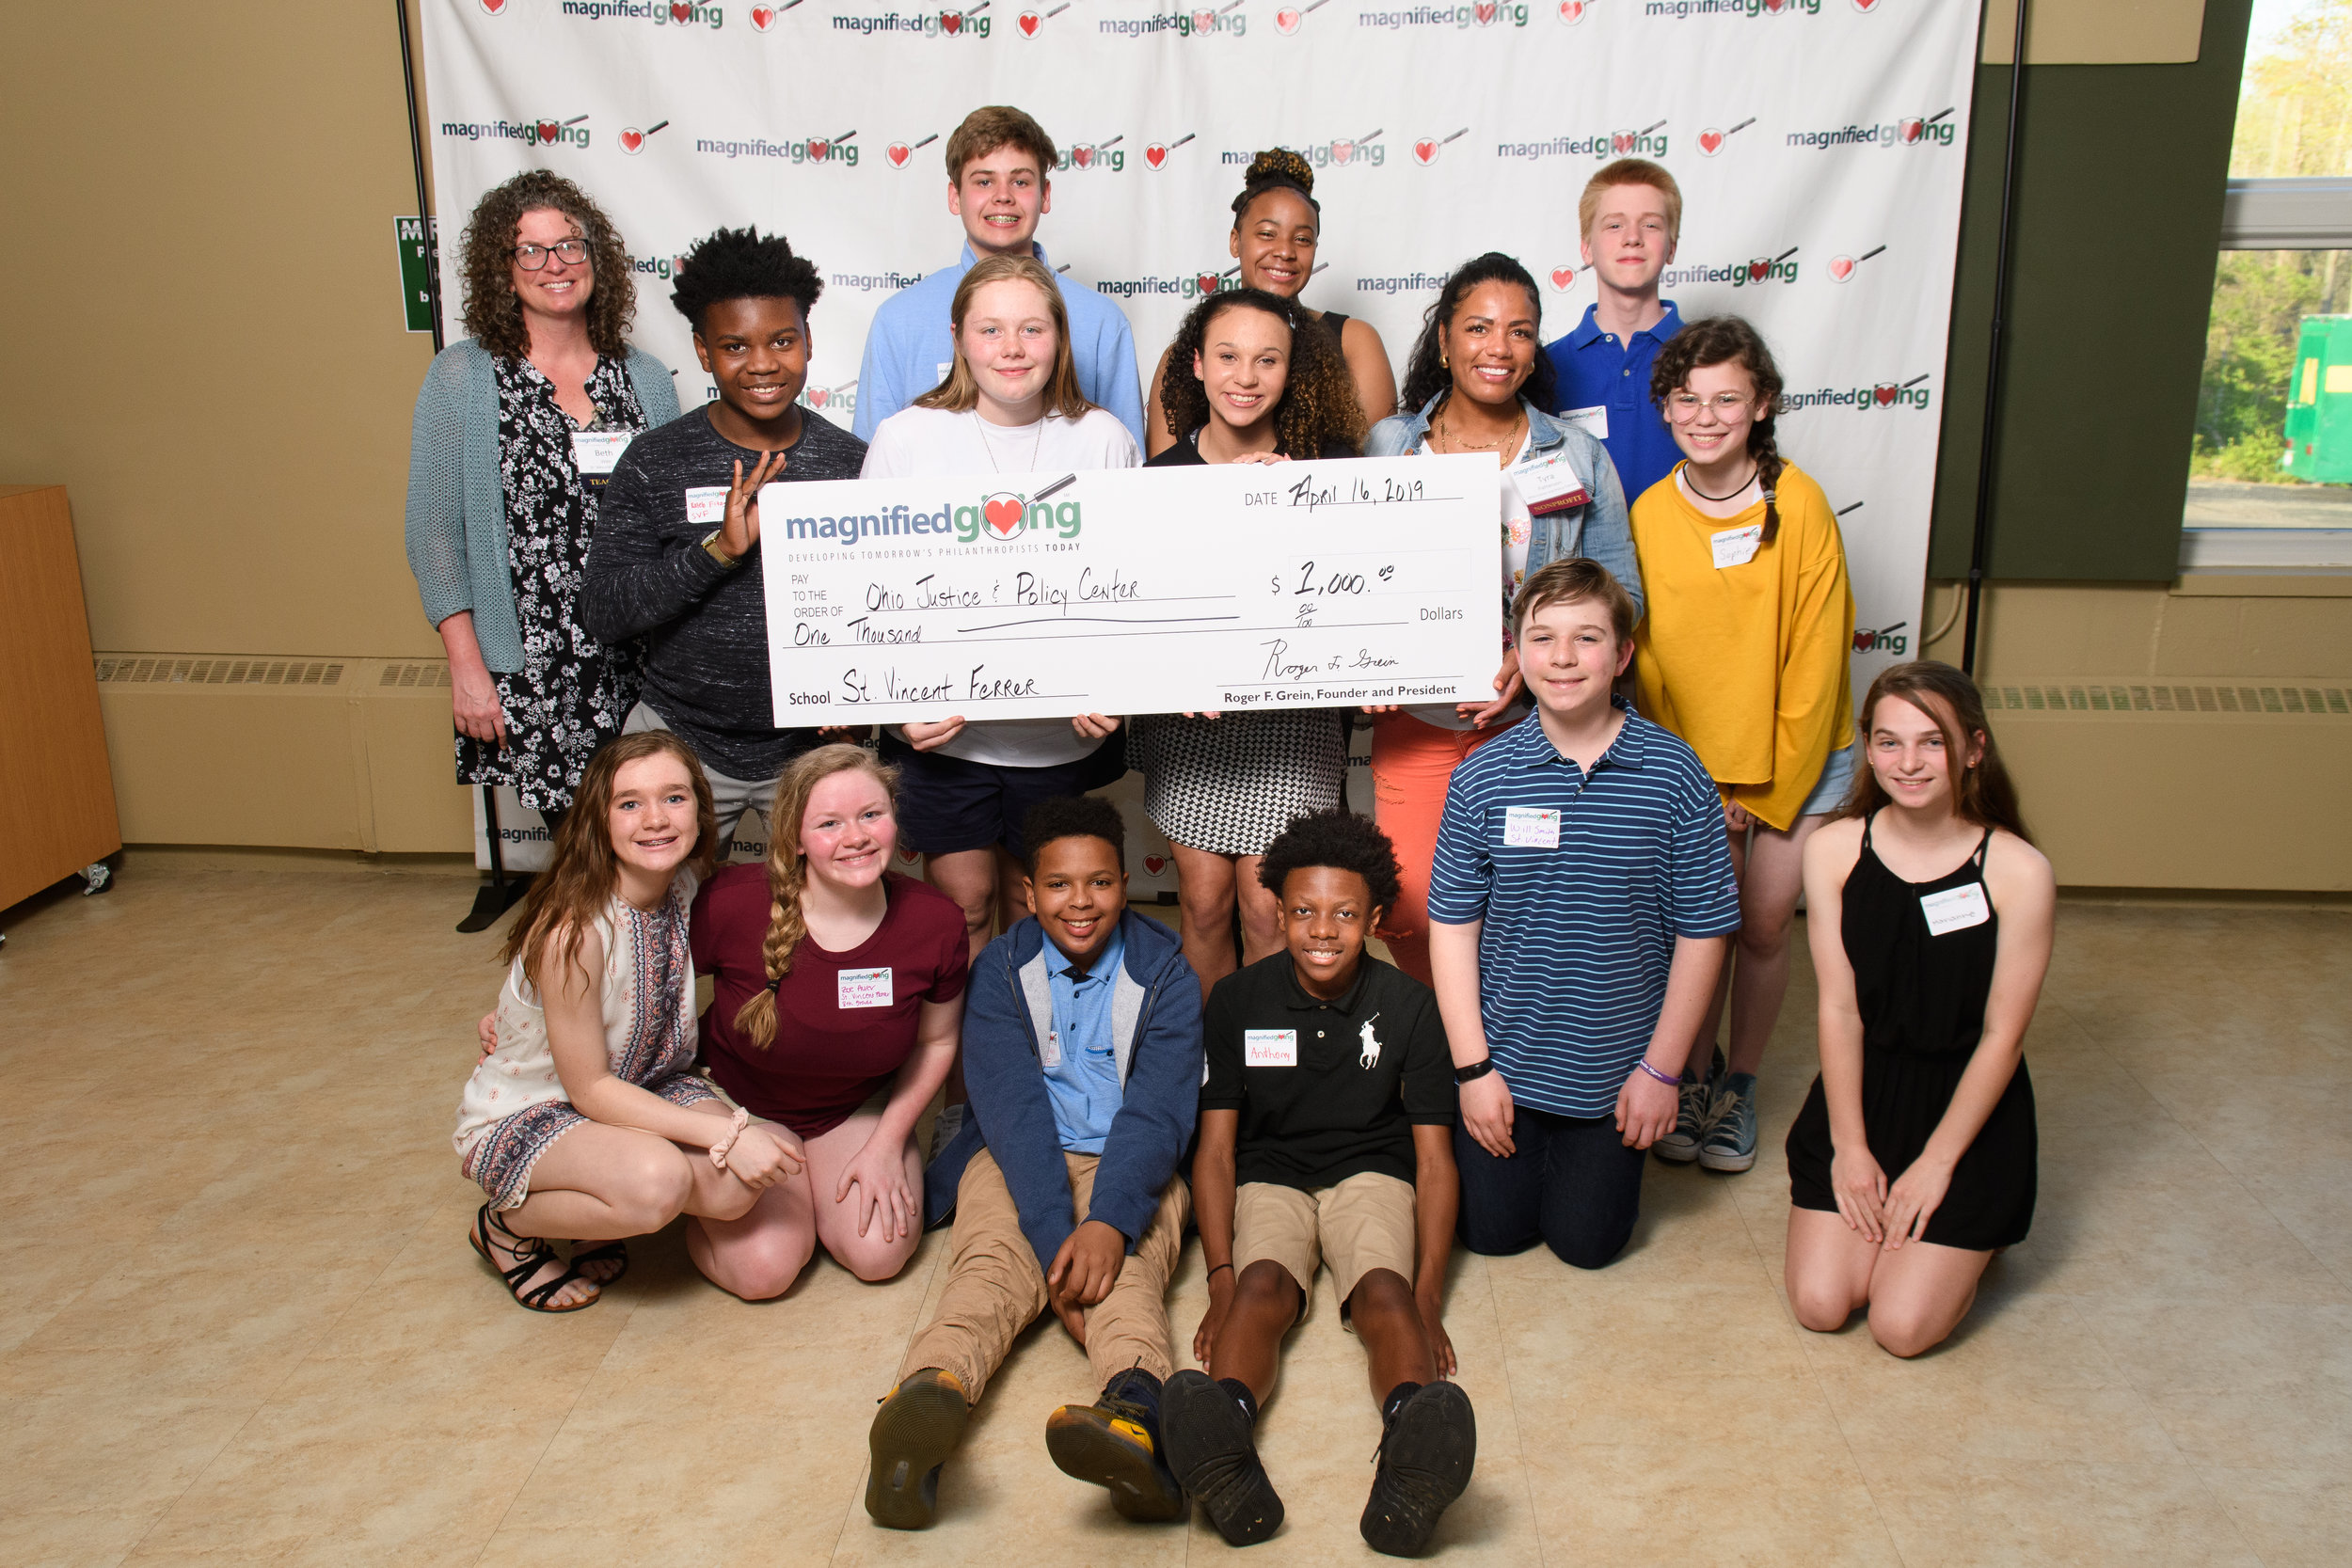 Award Ceremonies 2019 - 100 participating schools and youth groups awarded their 2019 youth philanthropy grants at the end of the school year. Check out the photos below to see the excitement and joy of giving!